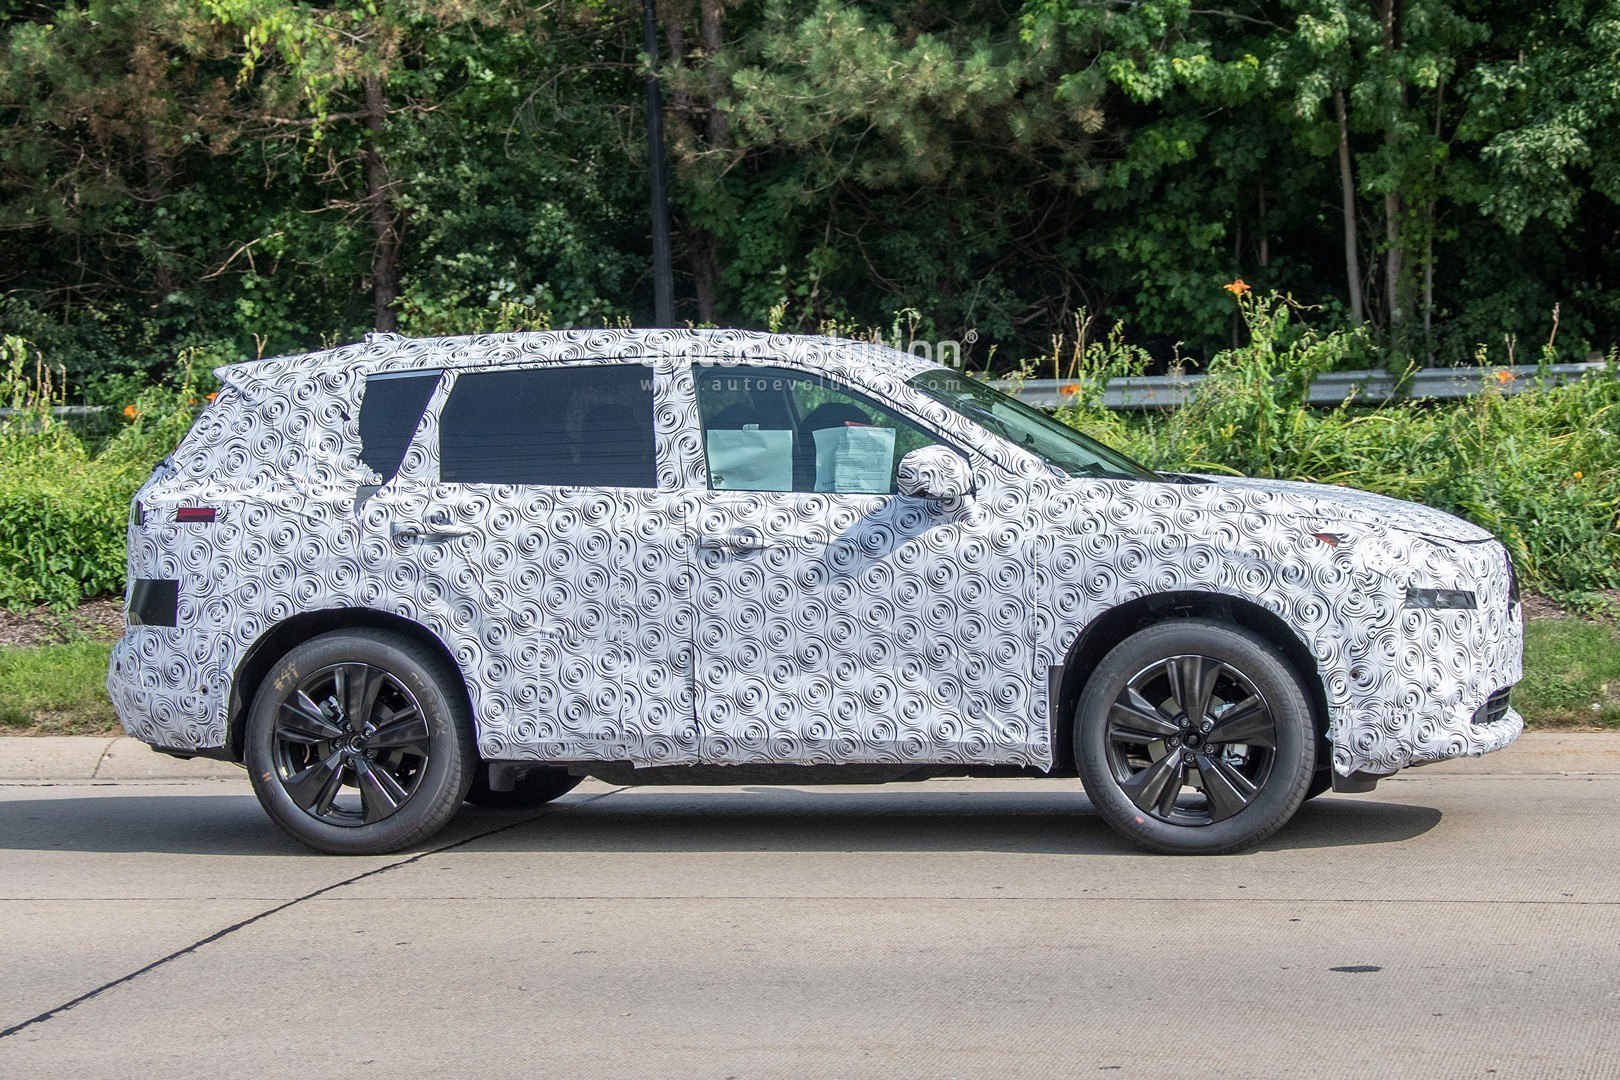 2021 nissan rogue spied testing in america  should preview european x-trail